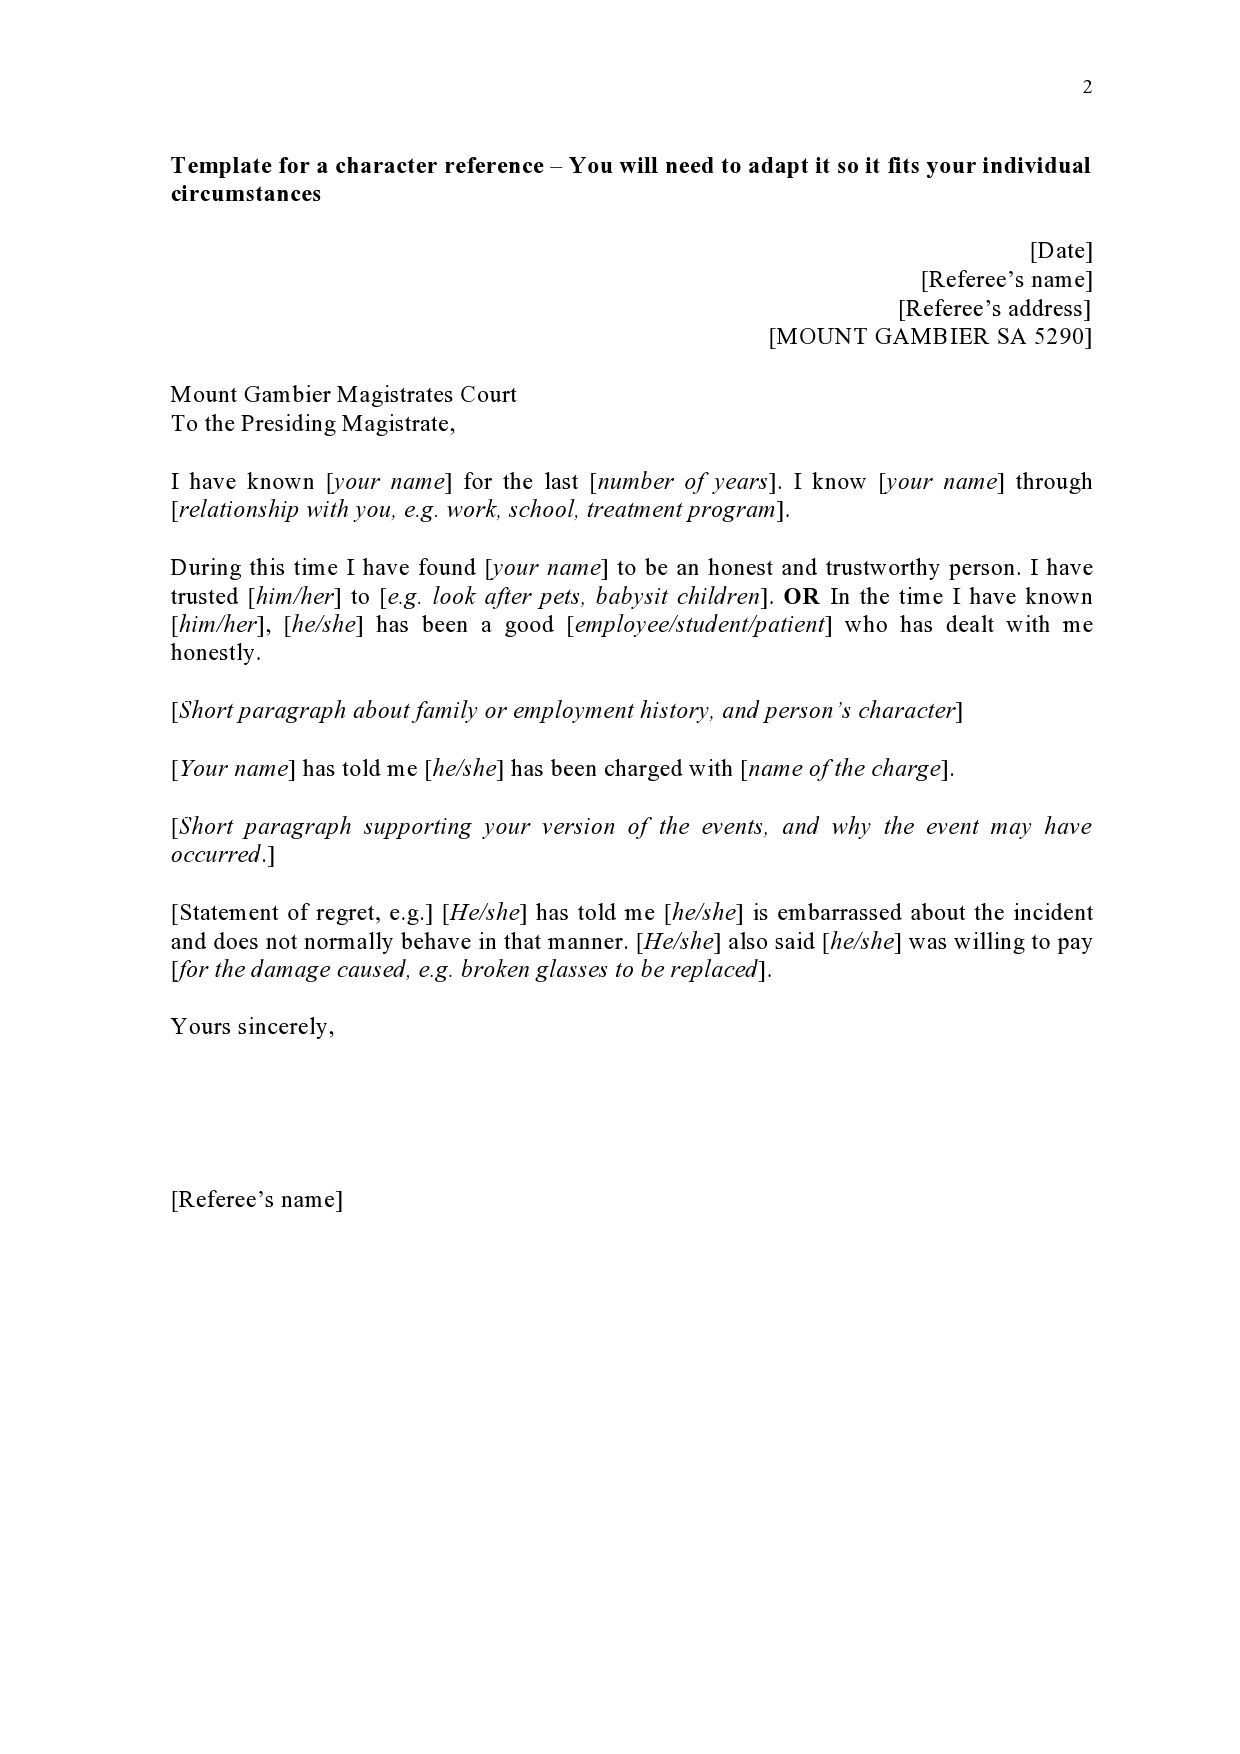 003 Remarkable Personal Reference Letter Template Picture  Character Word For Rental ApplicationFull